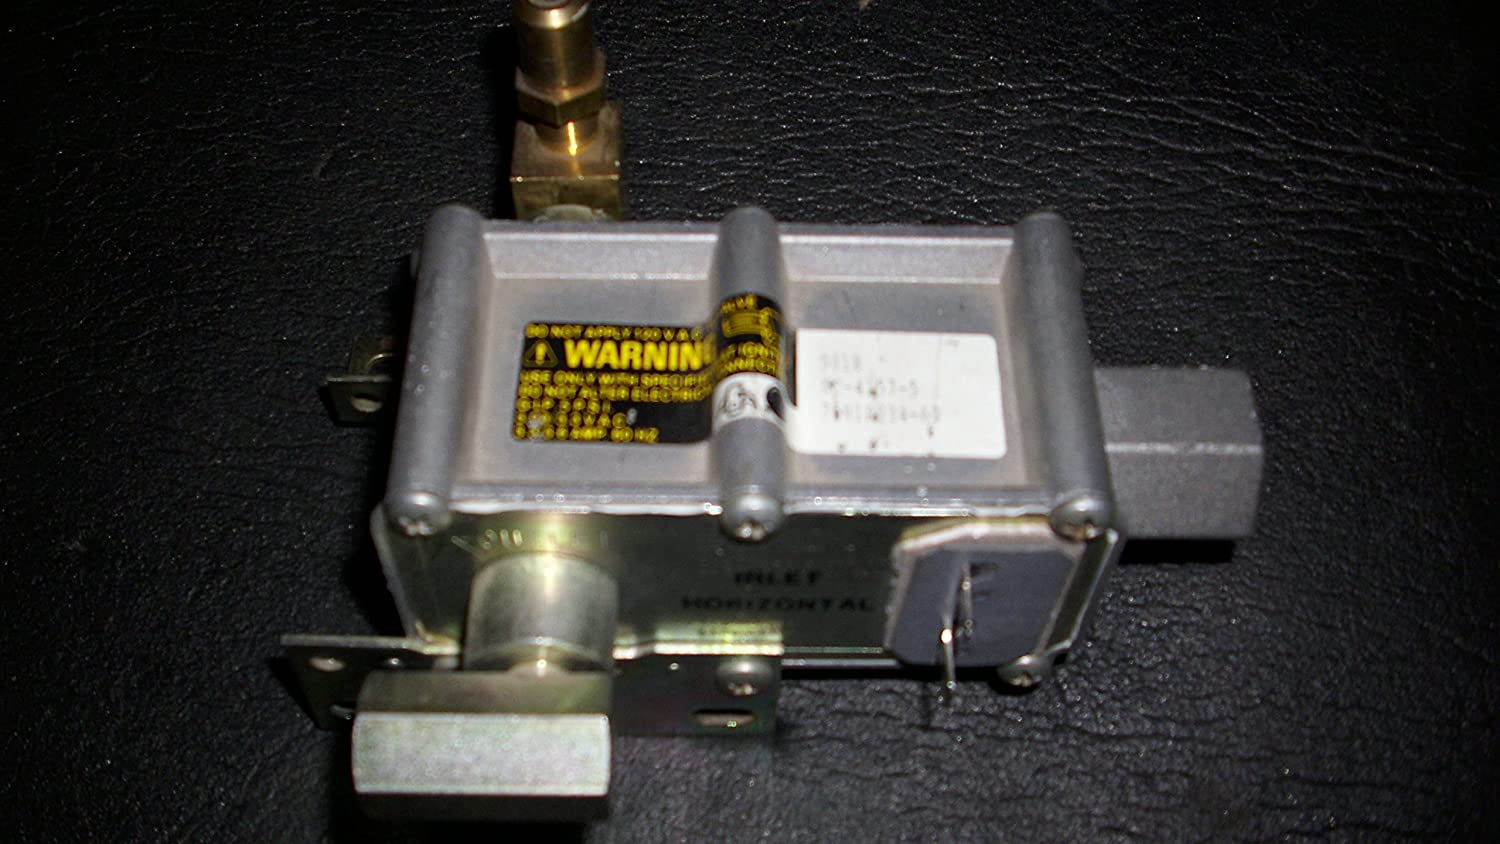 Whirlpool Gas safety valve for both bake and broil Whirlpool(OEM) Part #7501P095-60